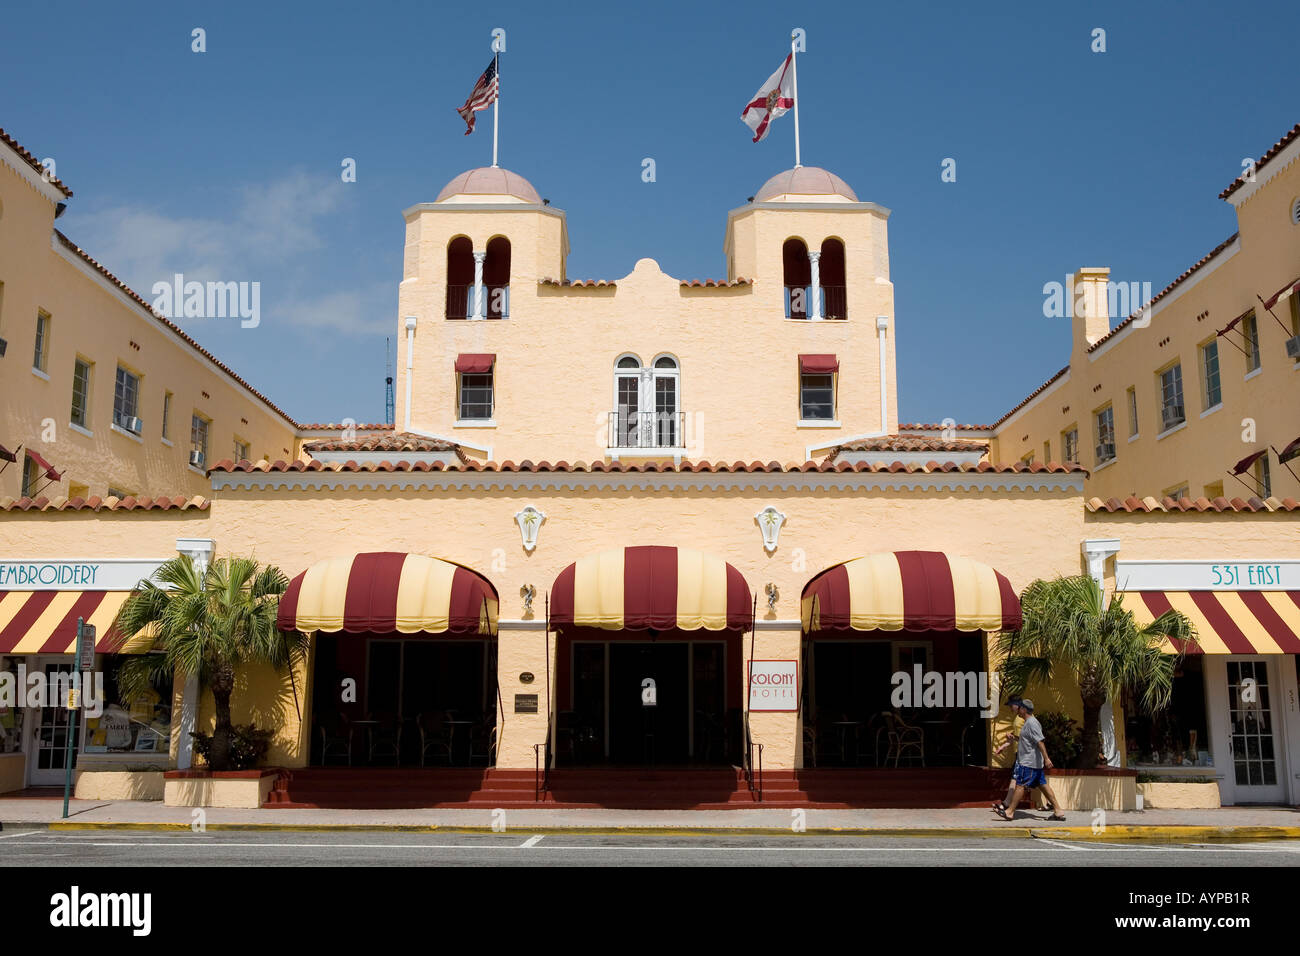 The art deco Colony Hotel Delray Beach Florida - Stock Image